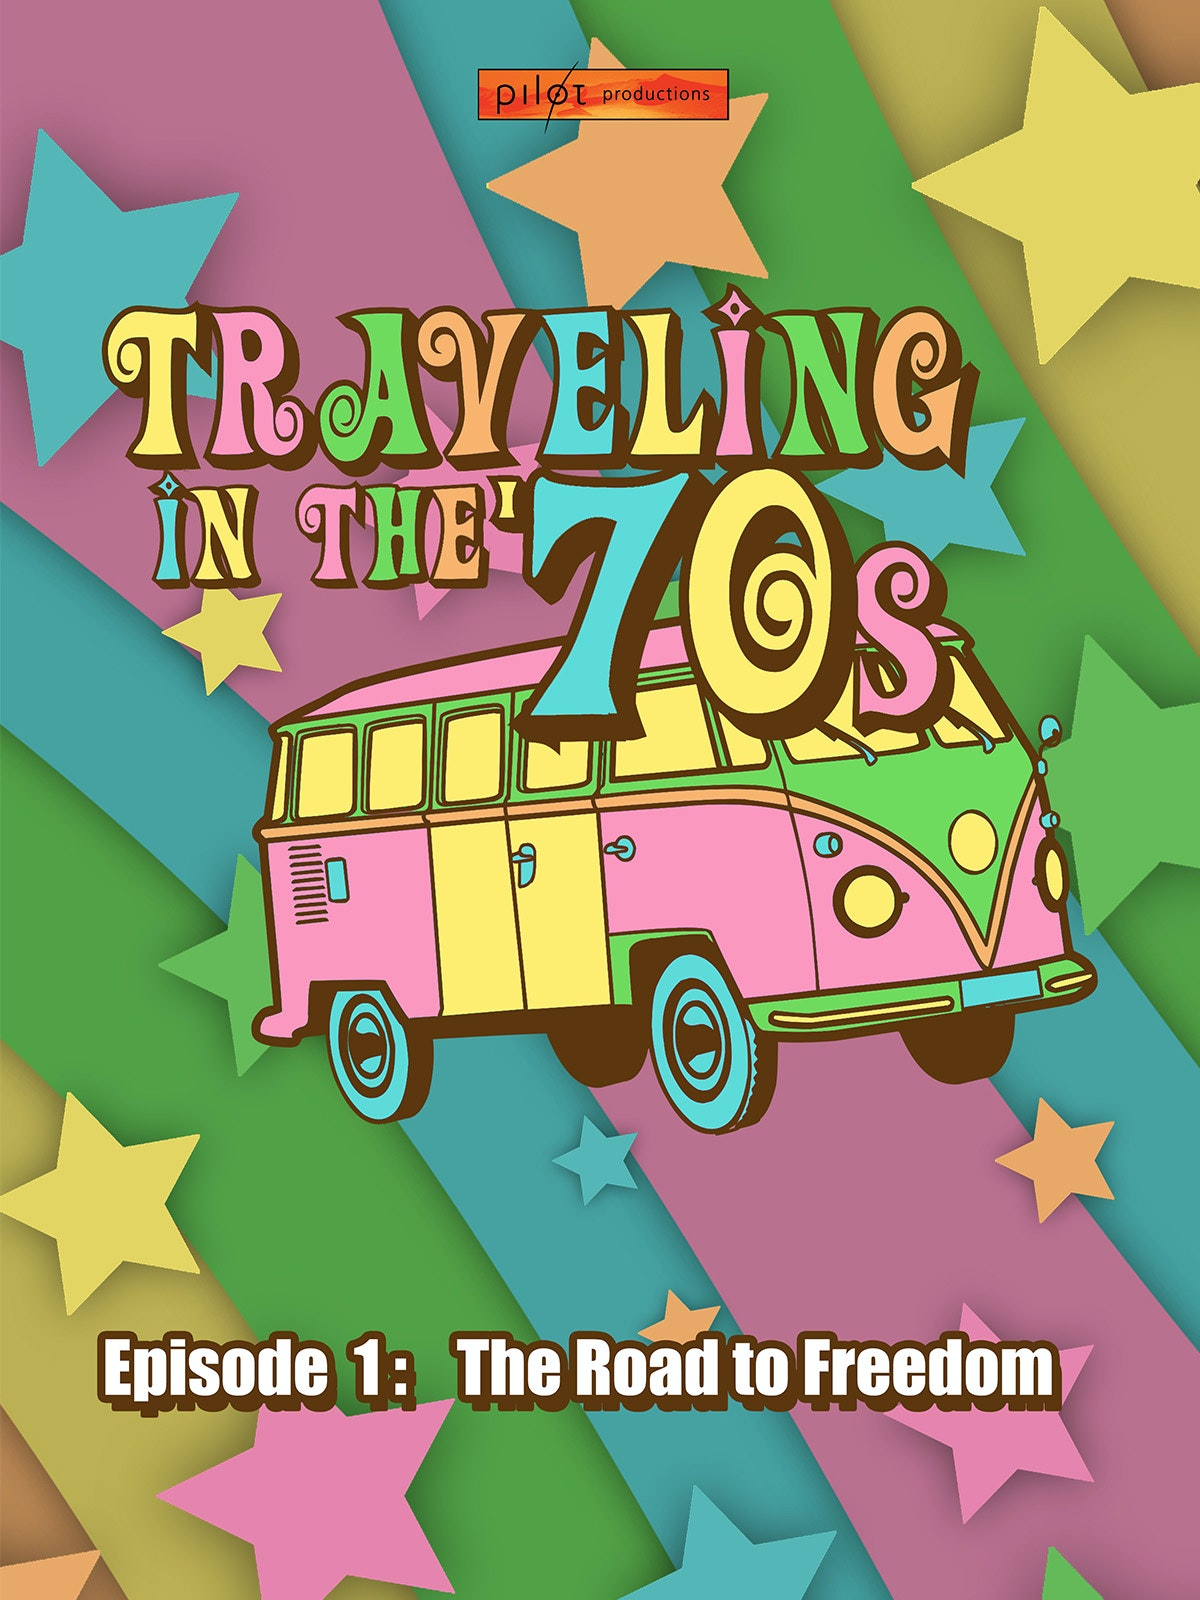 Travelling in the 1970's: Episode 1 – The Road of Freedom